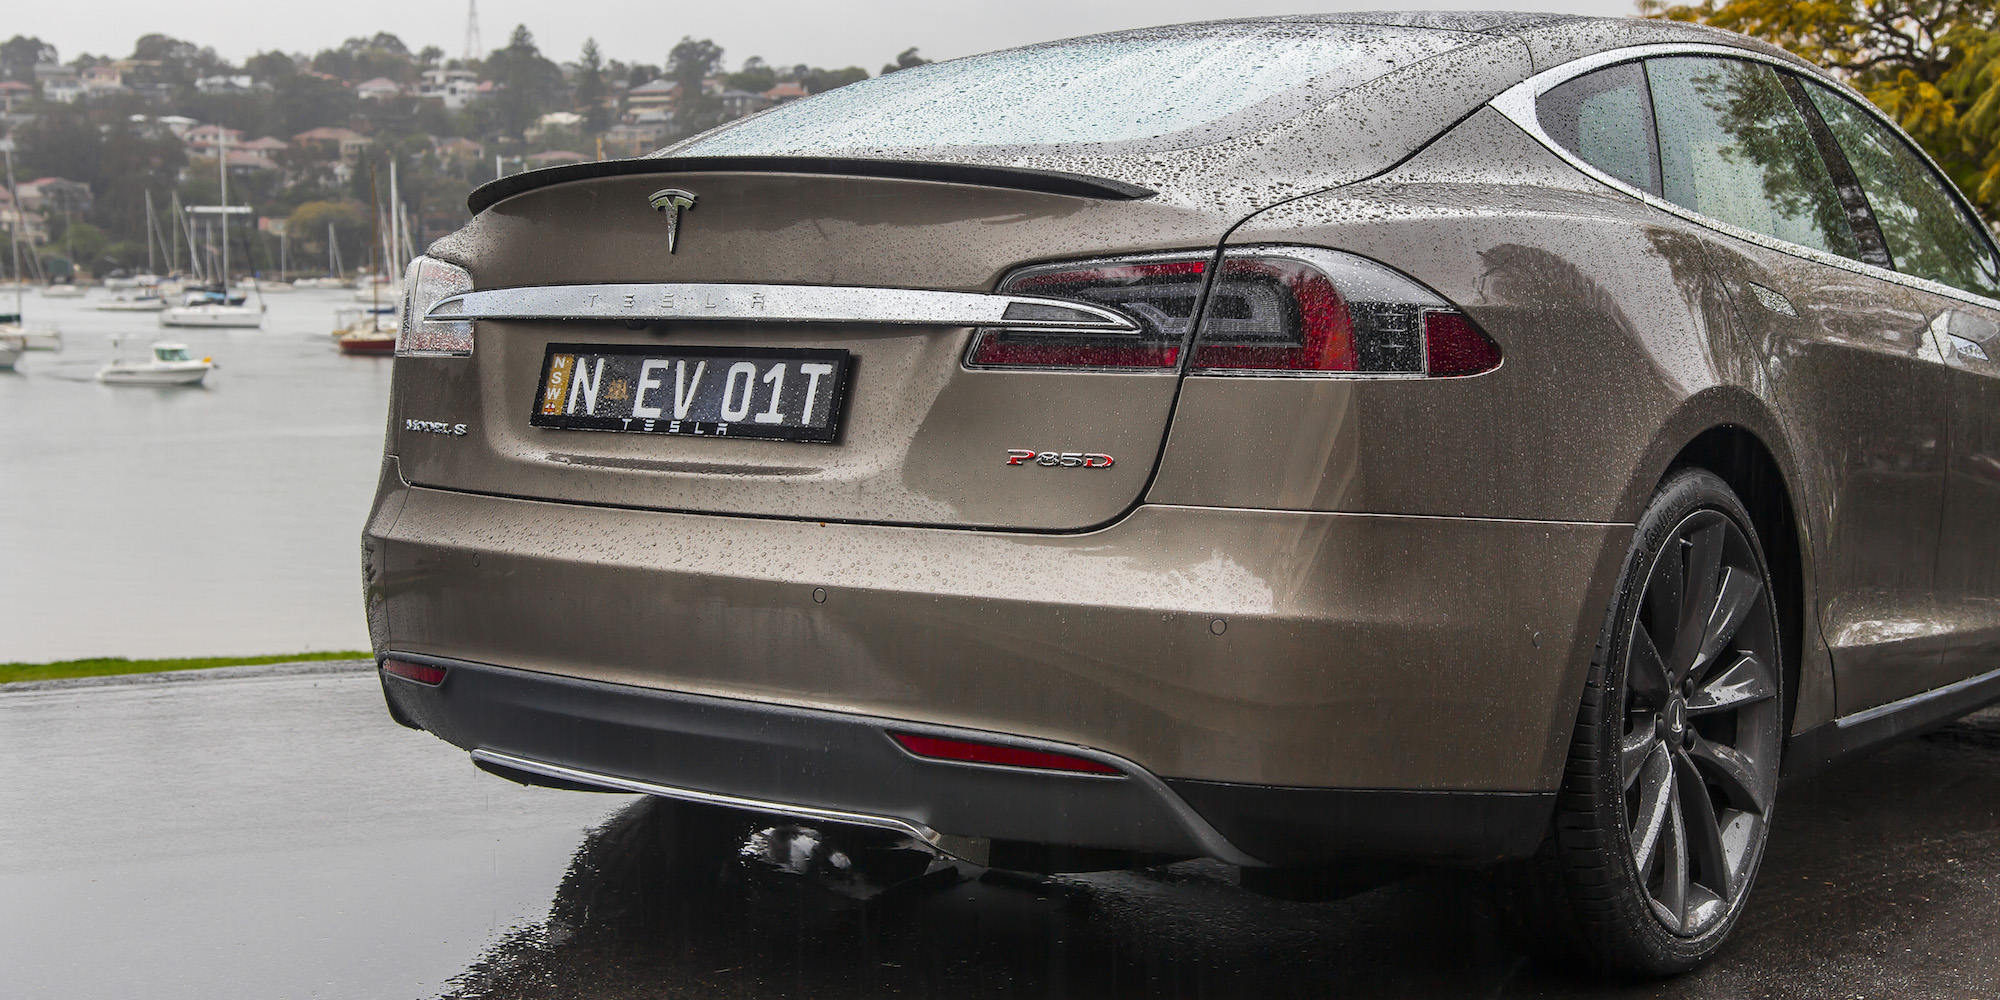 2015 Tesla Model S P85d Rear Body Close Up (View 35 of 37)